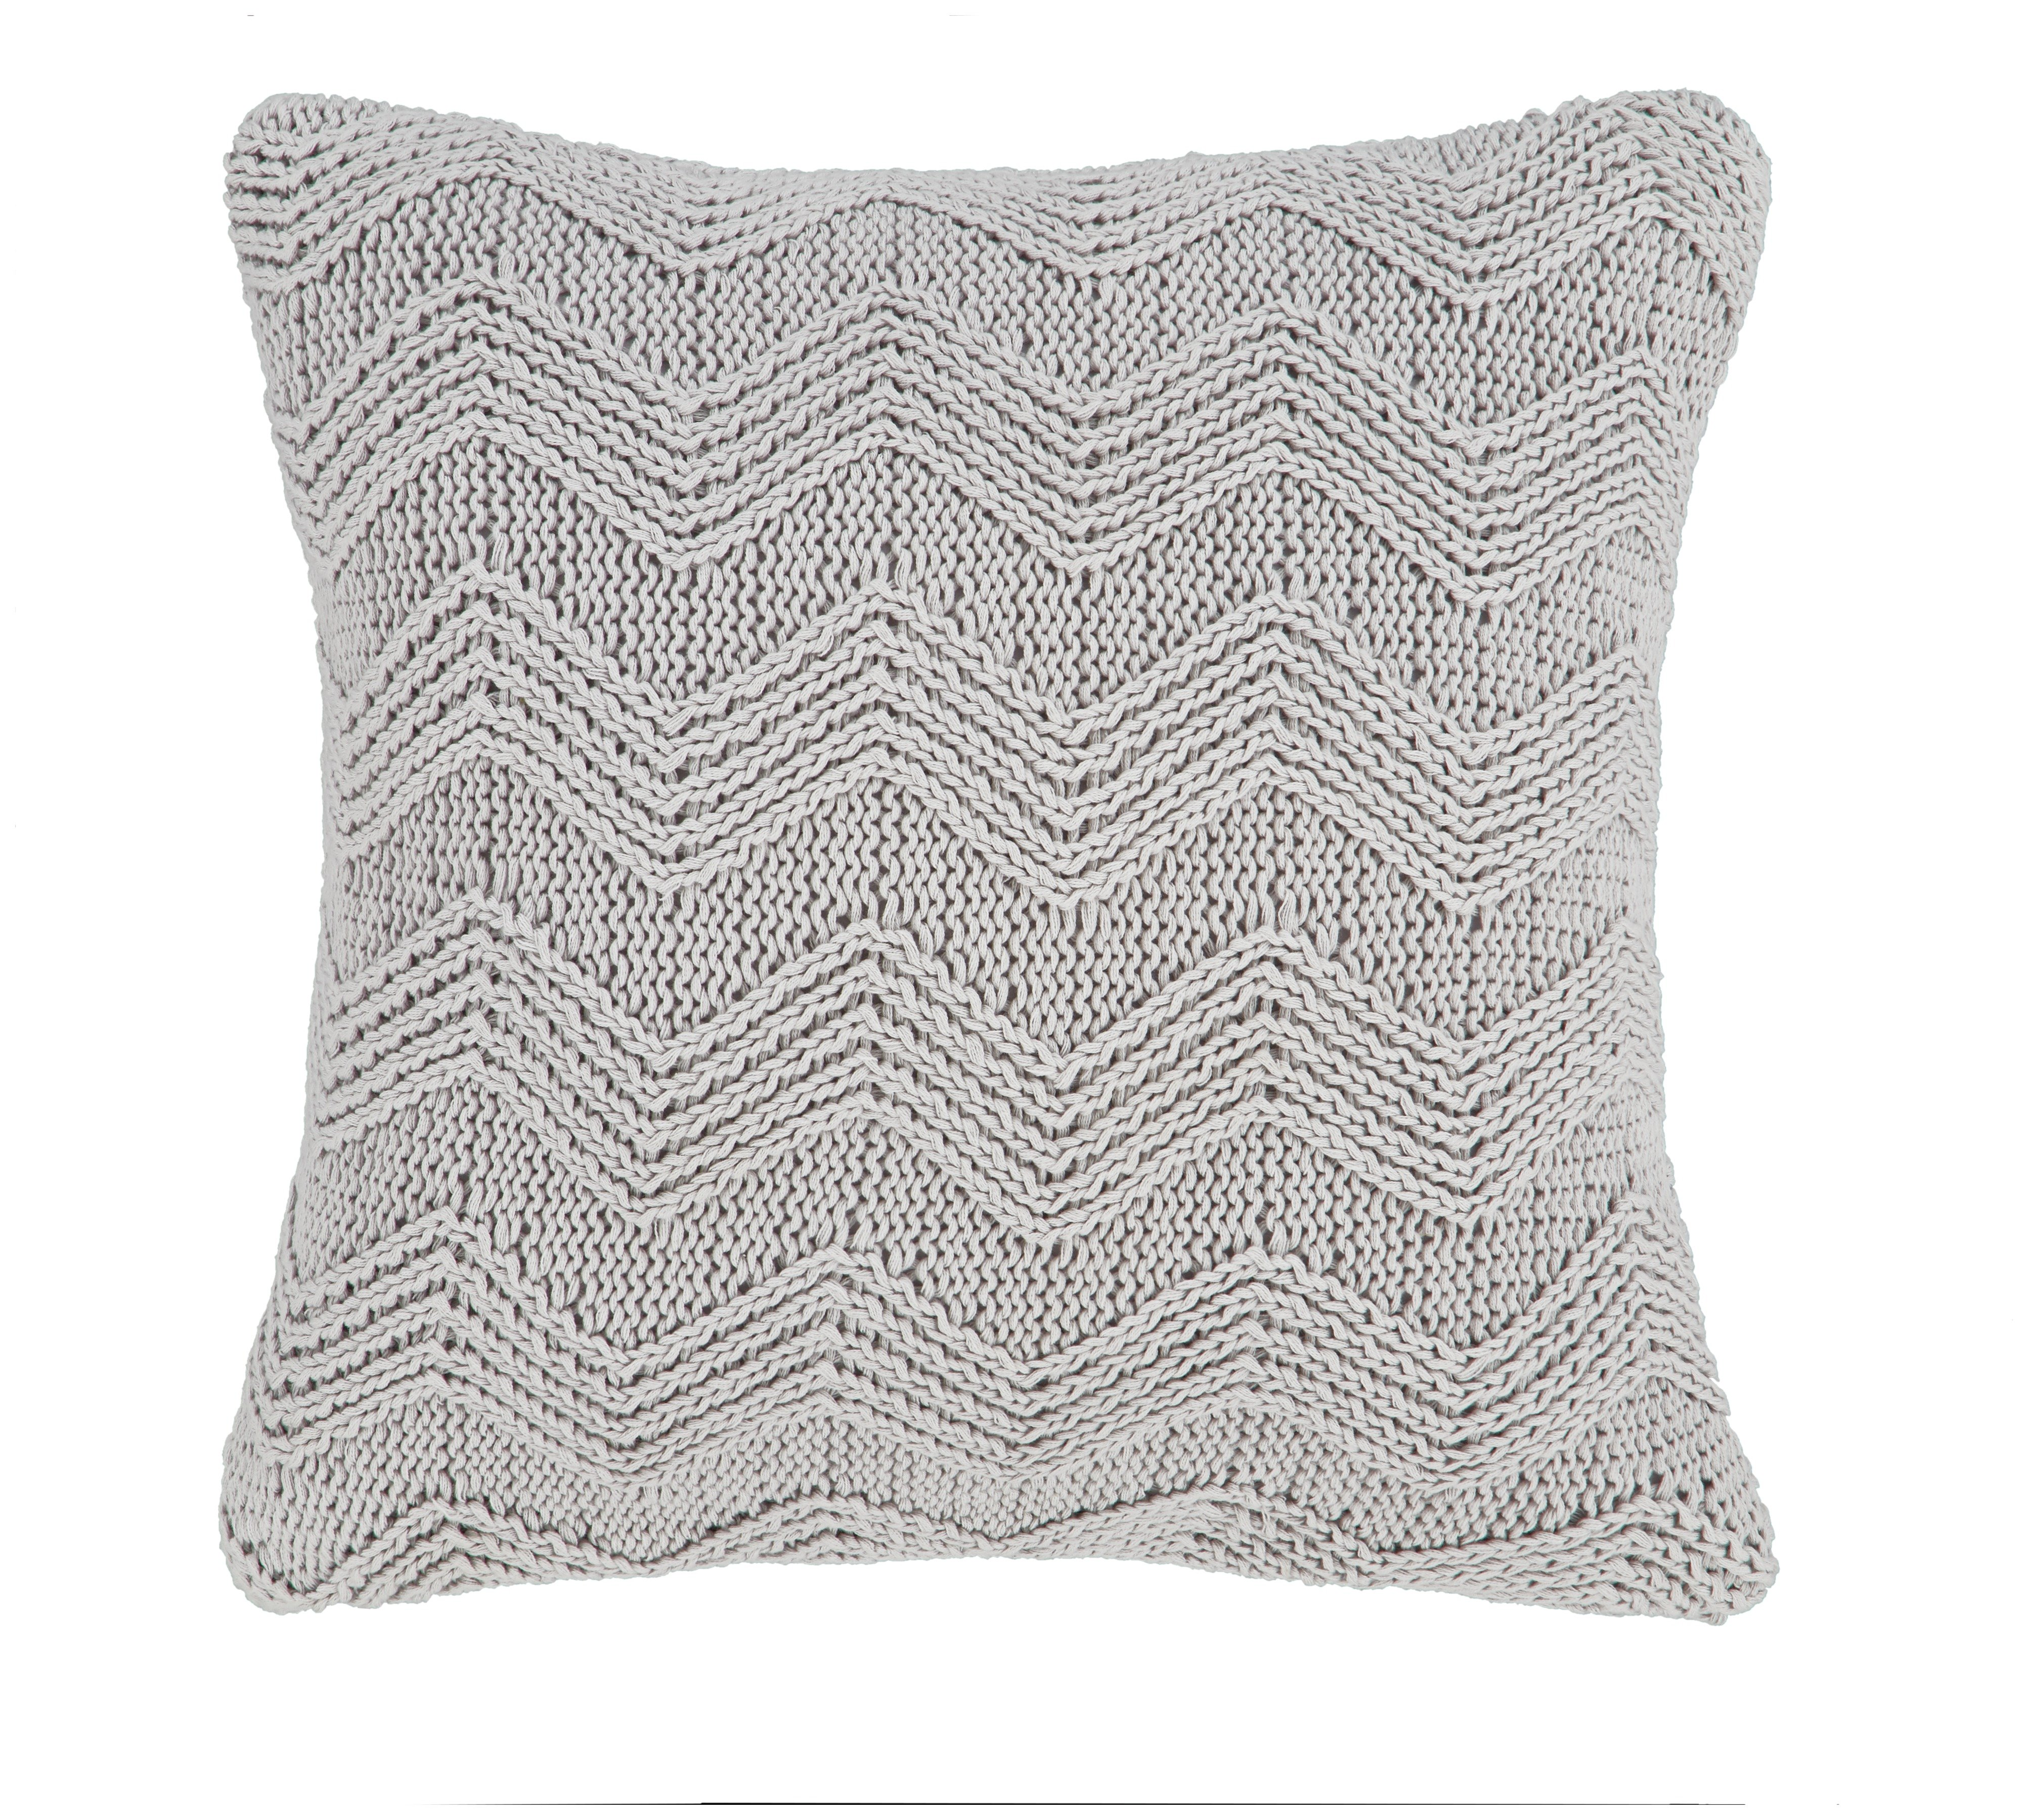 Bianca Cotton Soft Knit Filled Cushion Grey : 6691121RZ001A from furniturecompare.uk size 4010 x 3599 jpeg 2273kB